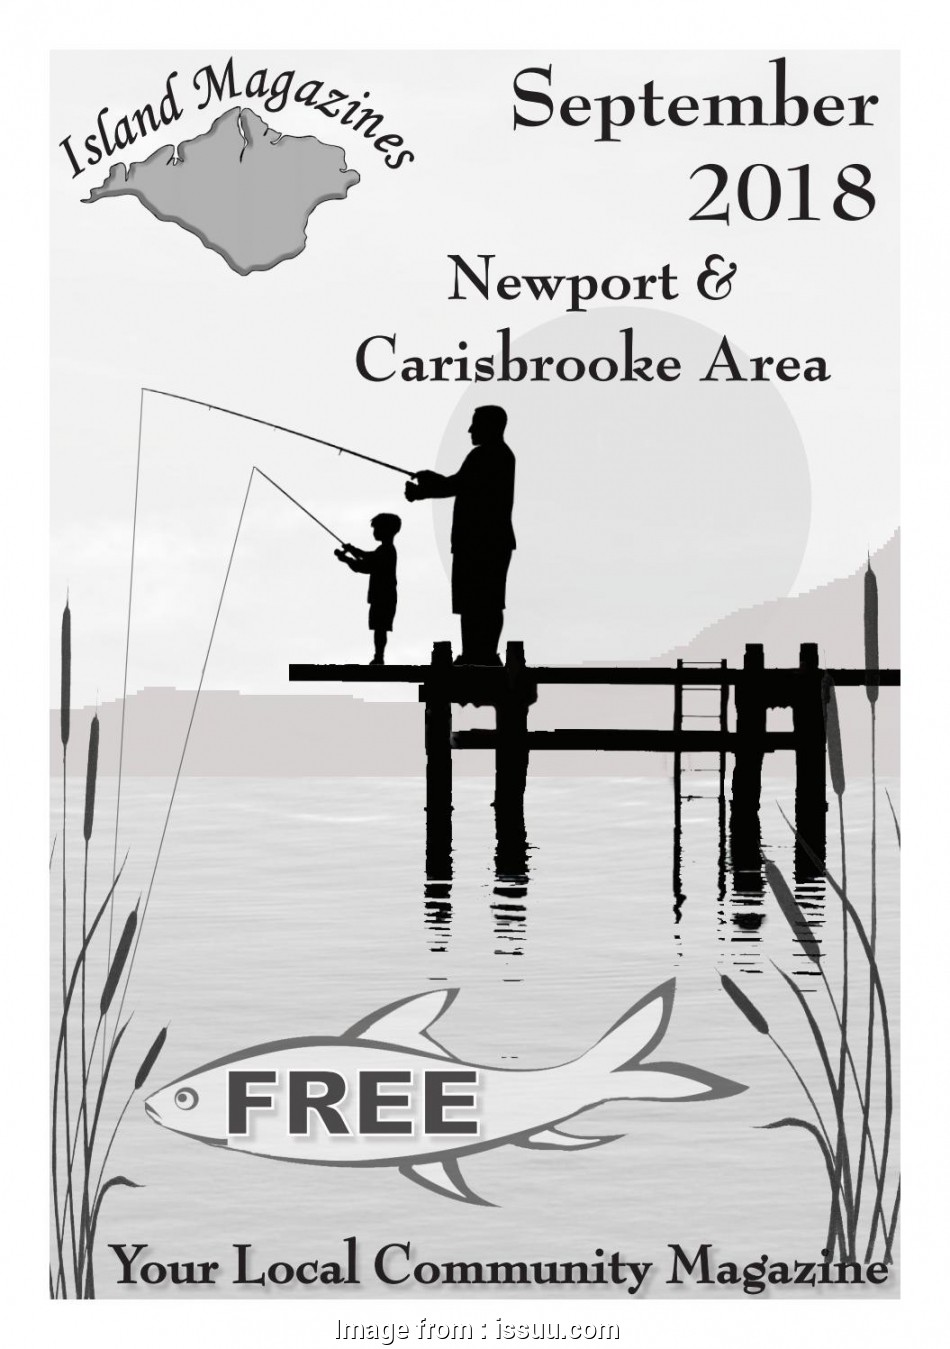 live wire electrical newport isle of wight Island Magazines Newport & Carisbrooke September 2018 Edition by Island Magazines, issuu 9 Fantastic Live Wire Electrical Newport Isle Of Wight Photos